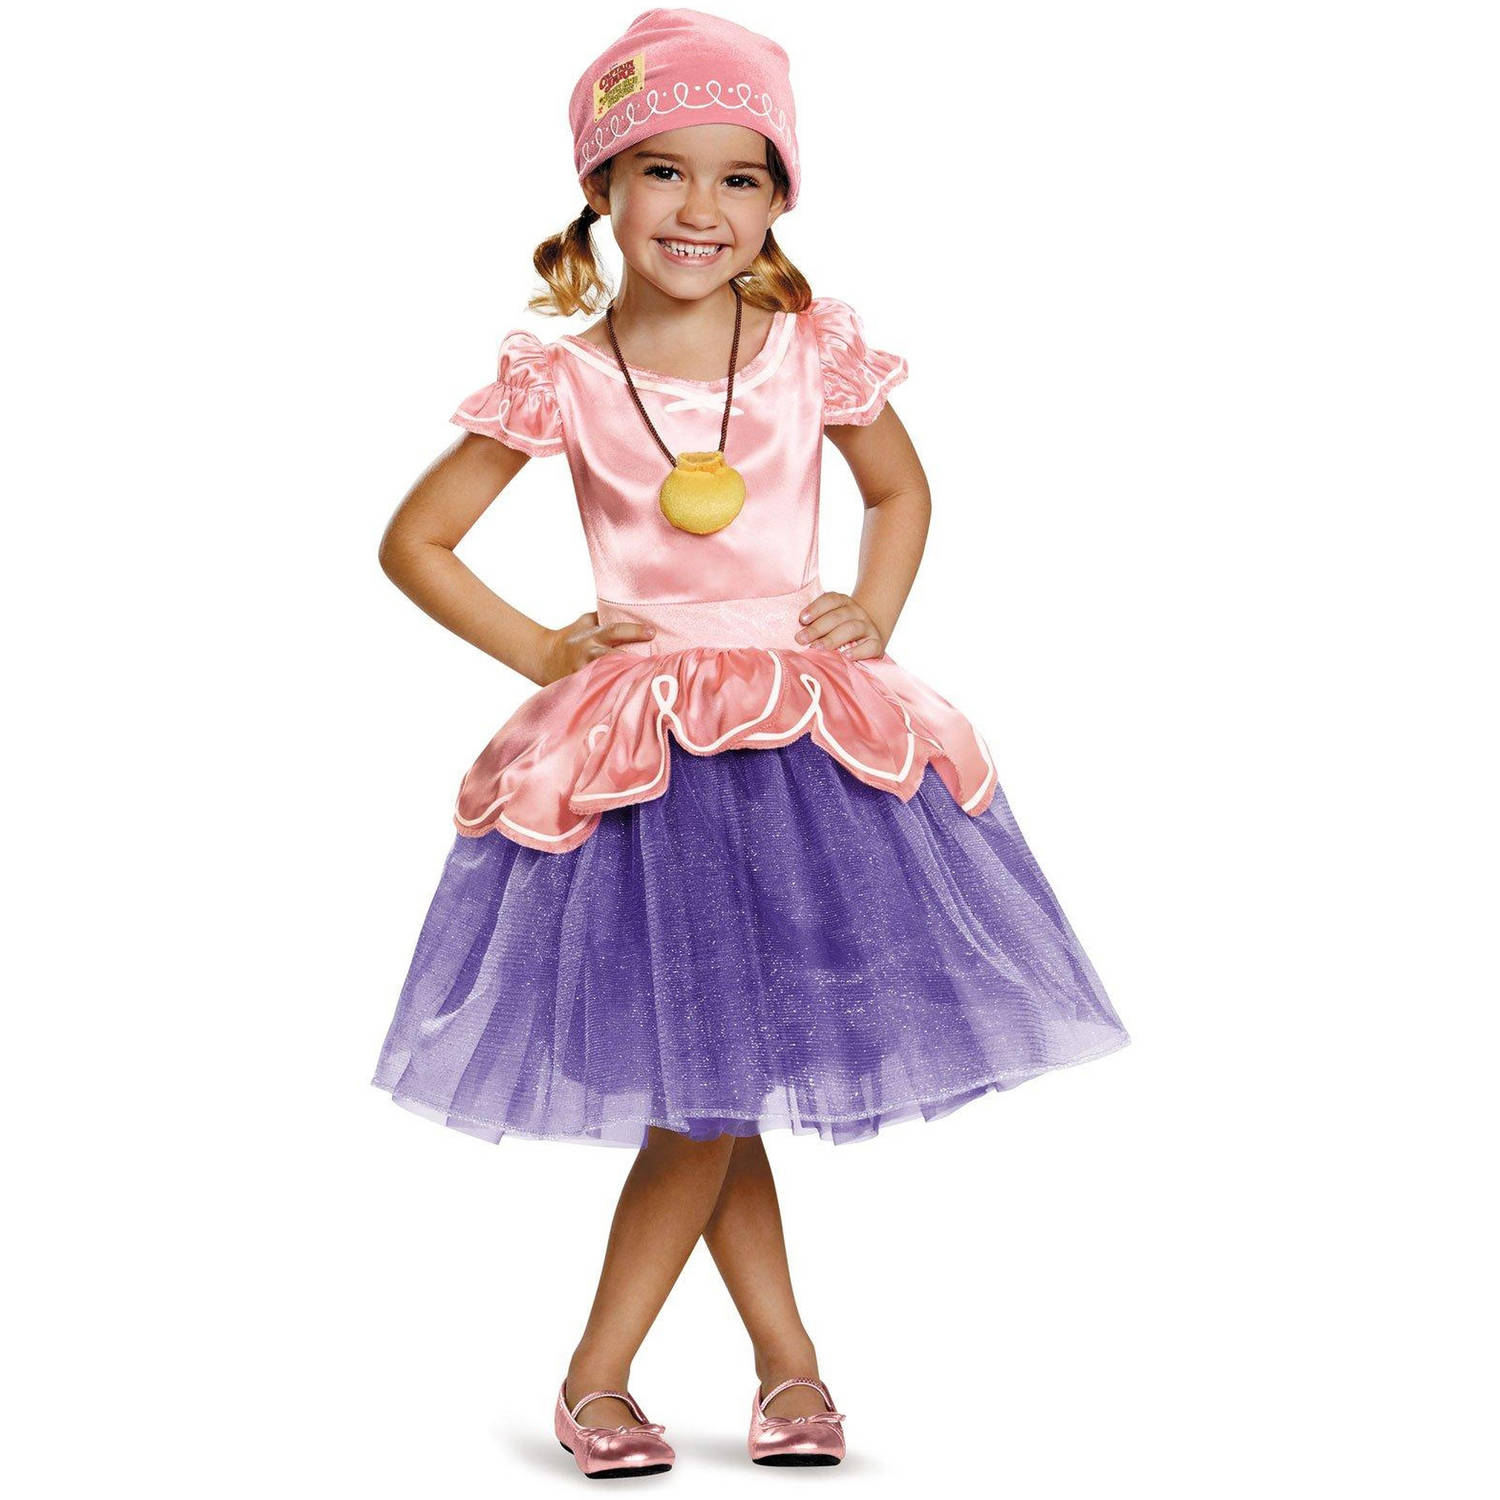 Captain Jake and the Never Land Pirates Izzy Deluxe Tutu Toddler Halloween Costume, 3T-4T